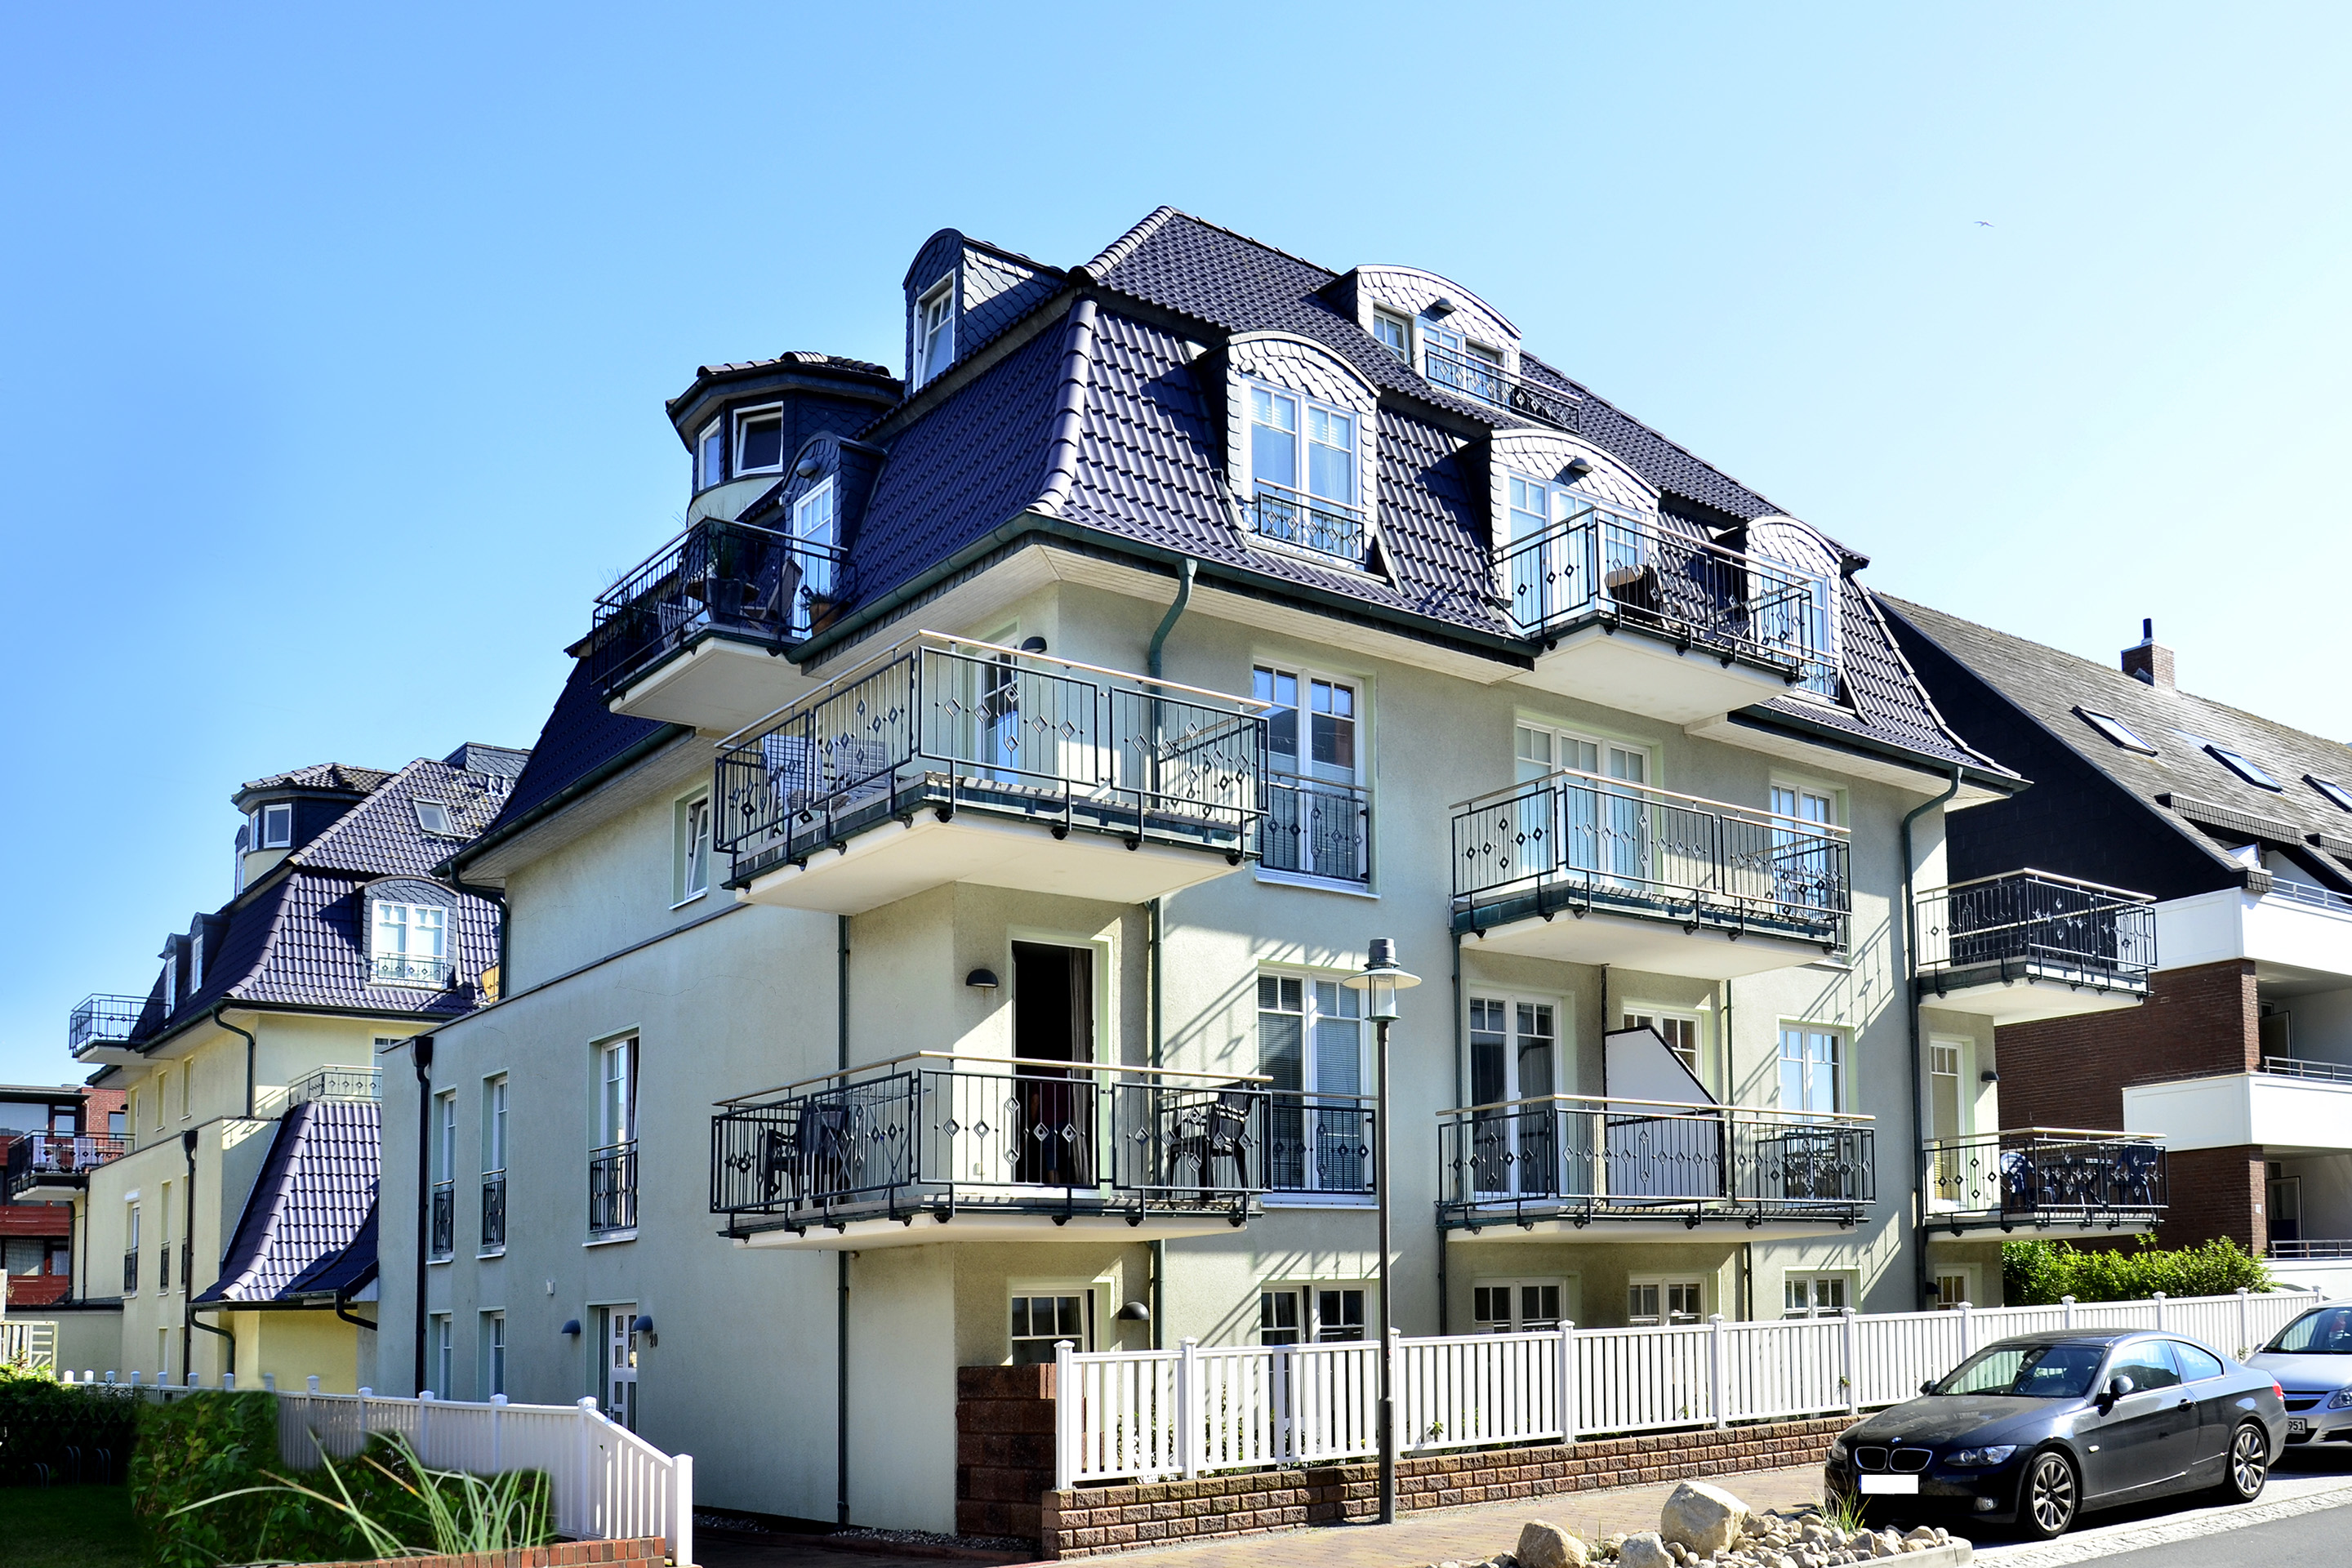 Makler Immo Immobilien Auf Sylt - Wiking Sylt Immobilien